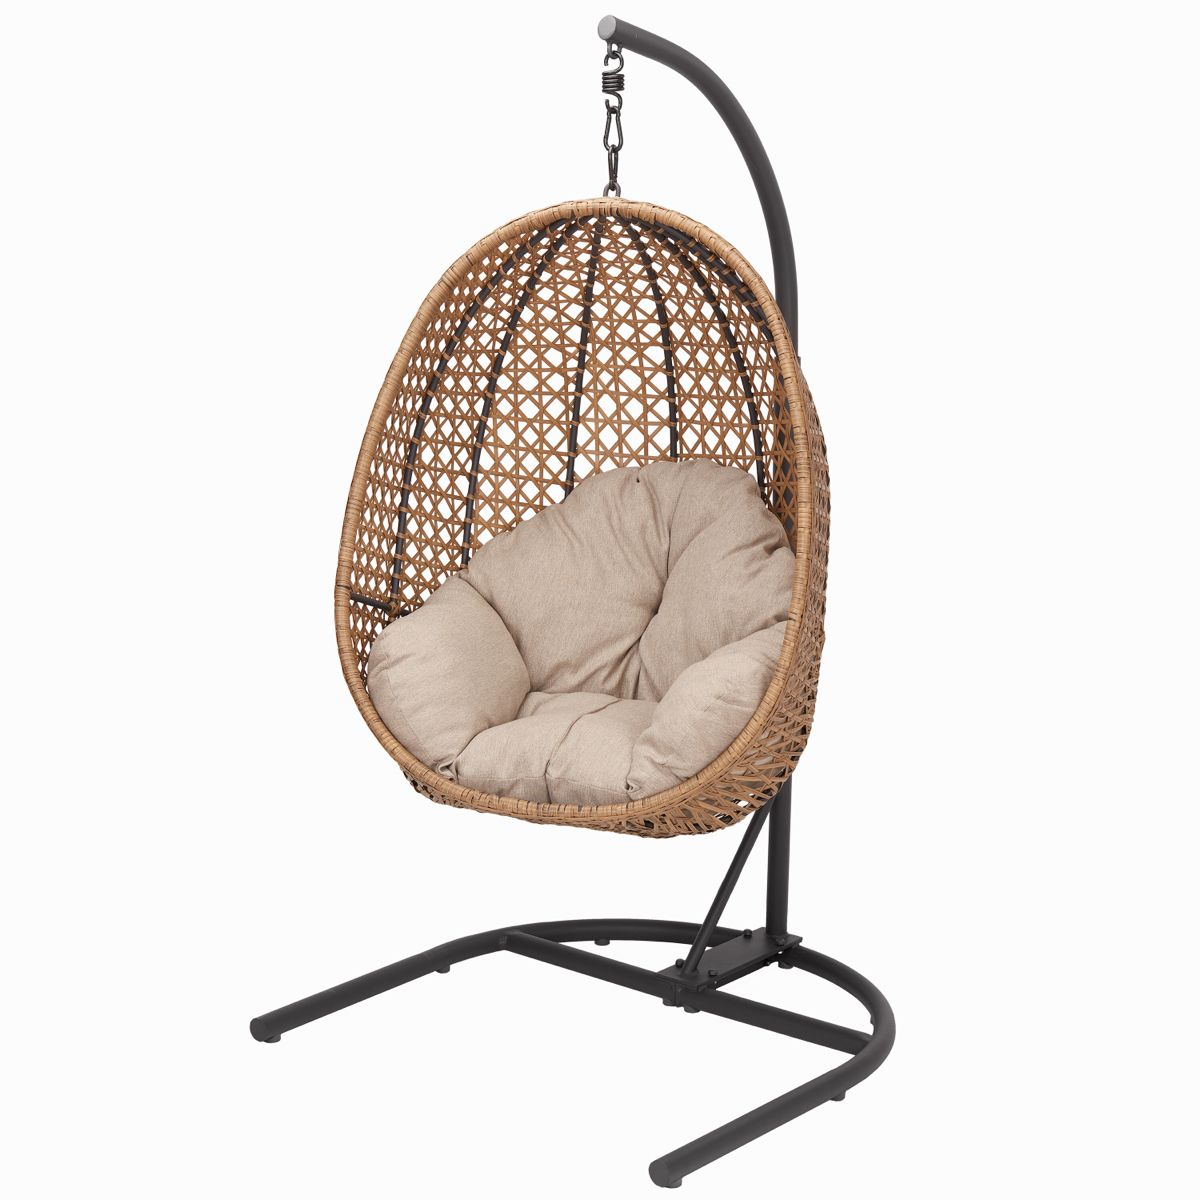 Better Homes Gardens Open Weave Patio Wicker Hanging Chair With Stand And Beige Cushion With Maximum Weight 250lbs Walmart Com Hanging Chair With Stand Swinging Chair Hanging Egg Chair Hanging wicker chair with stand